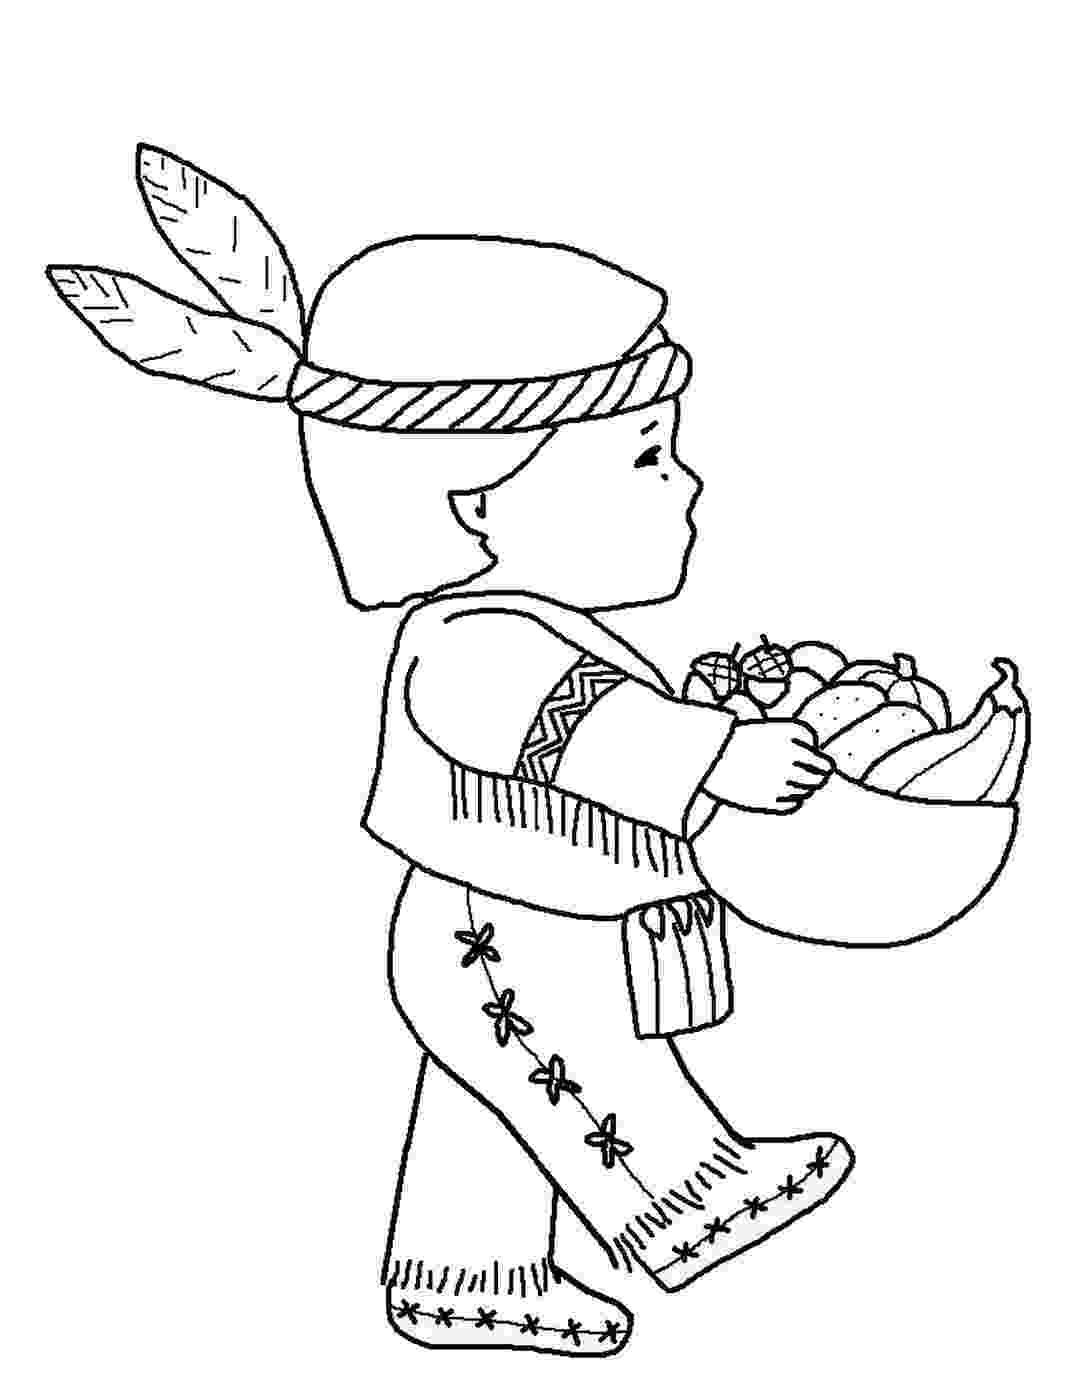 indian pictures to color indians coloring pages to pictures color indian